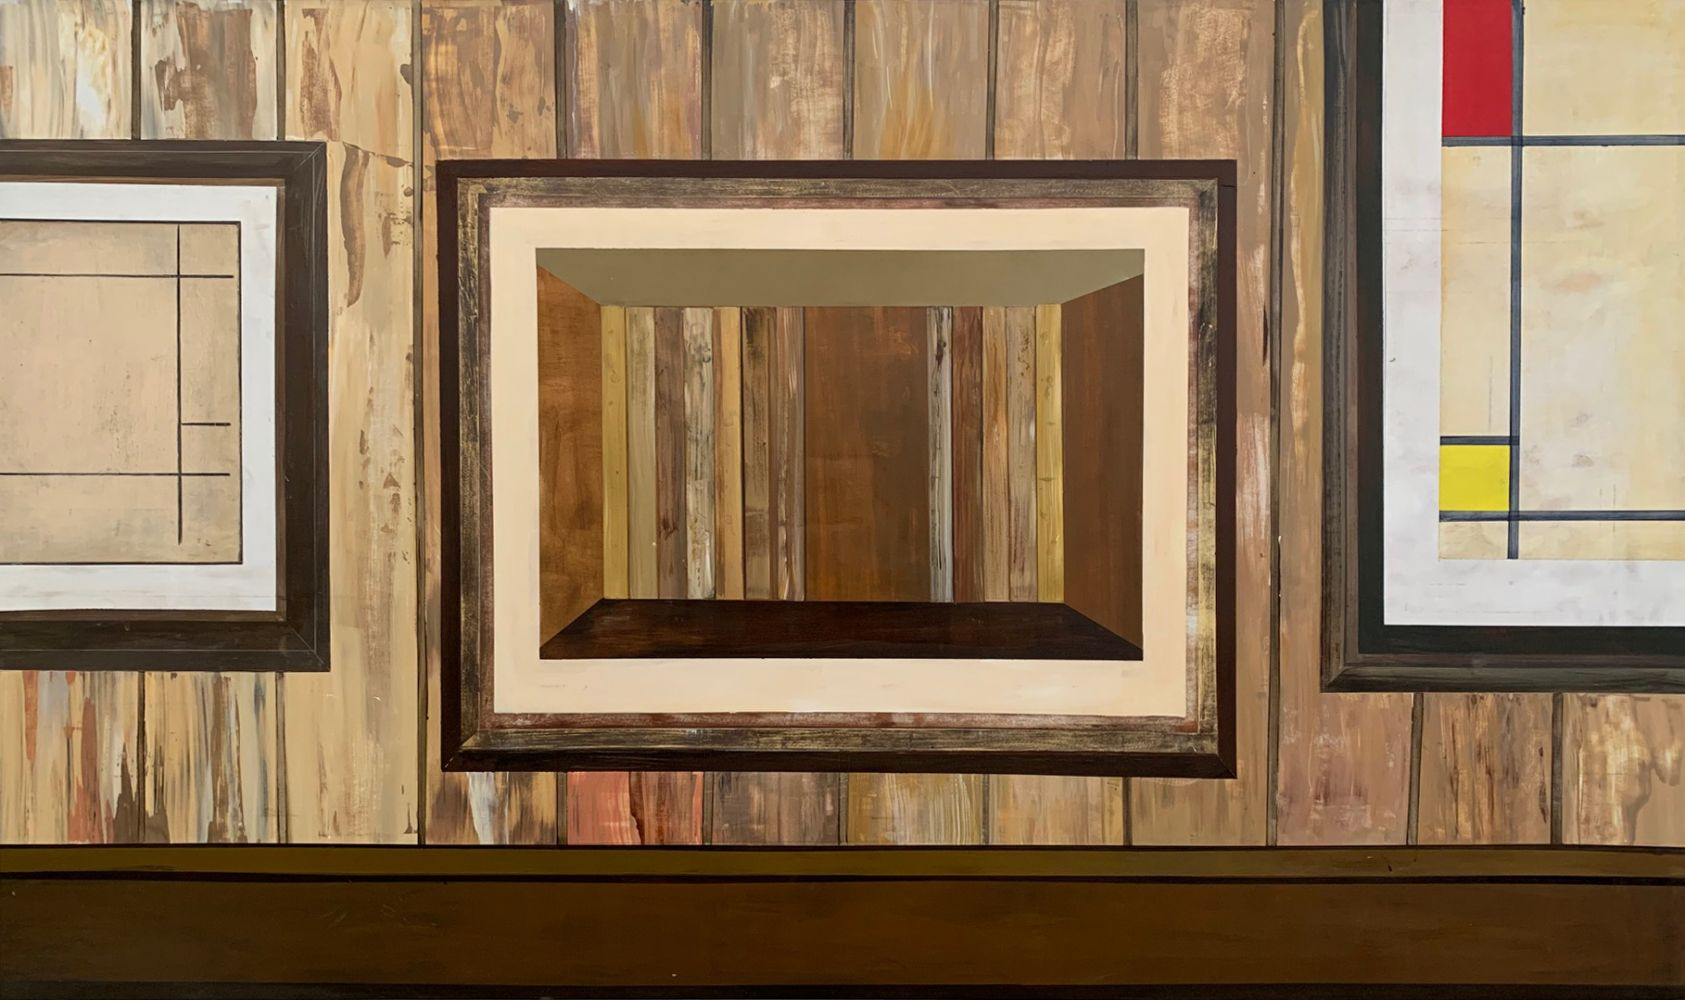 a painting of a wood room hanging over a painted wood wall